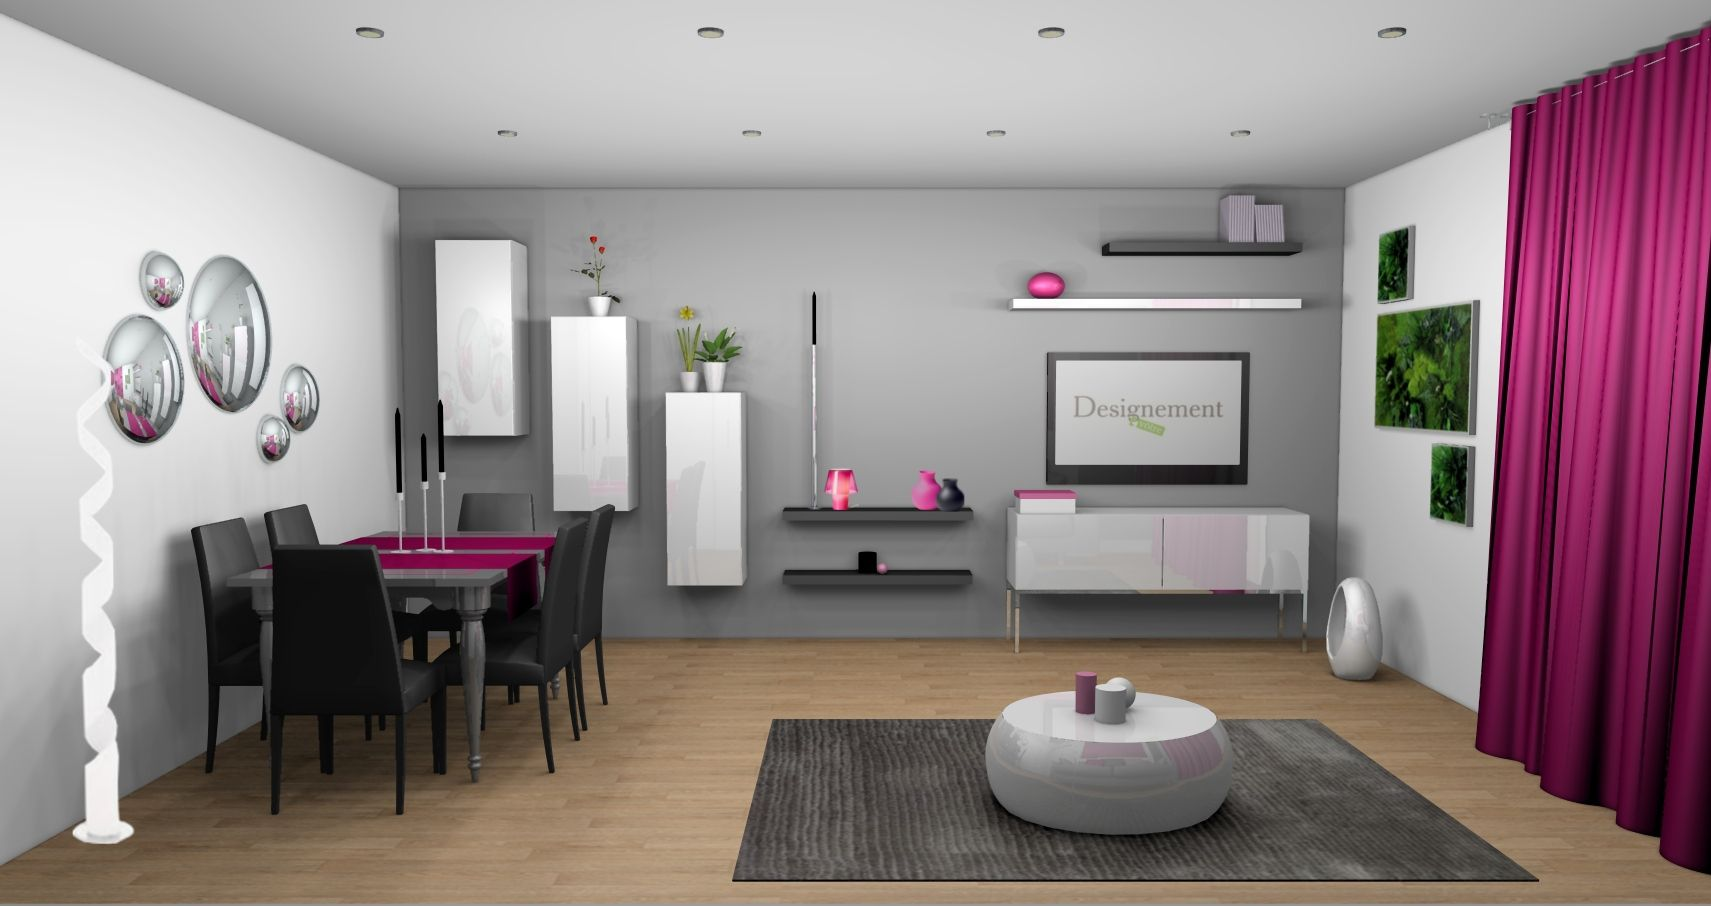 d co salon m r gris et blanc touche de couleur fushia On decoration salon design blanc